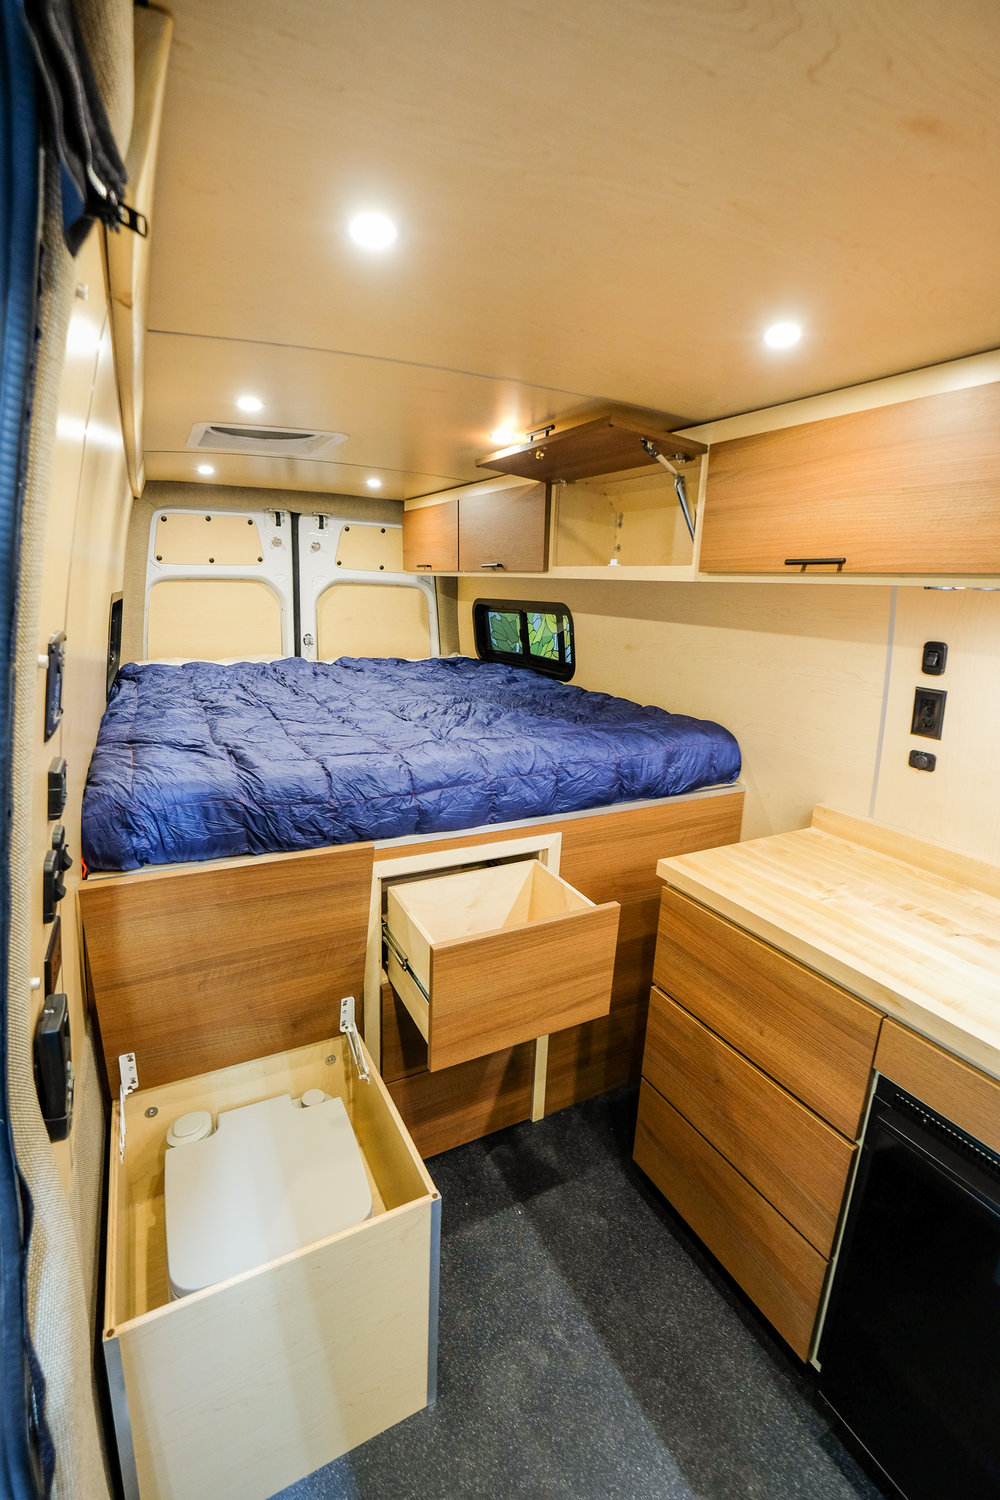 "Vanlife Customs 170"" Sprinter 4x4 Camper Van Conversion Storage and Toilet"